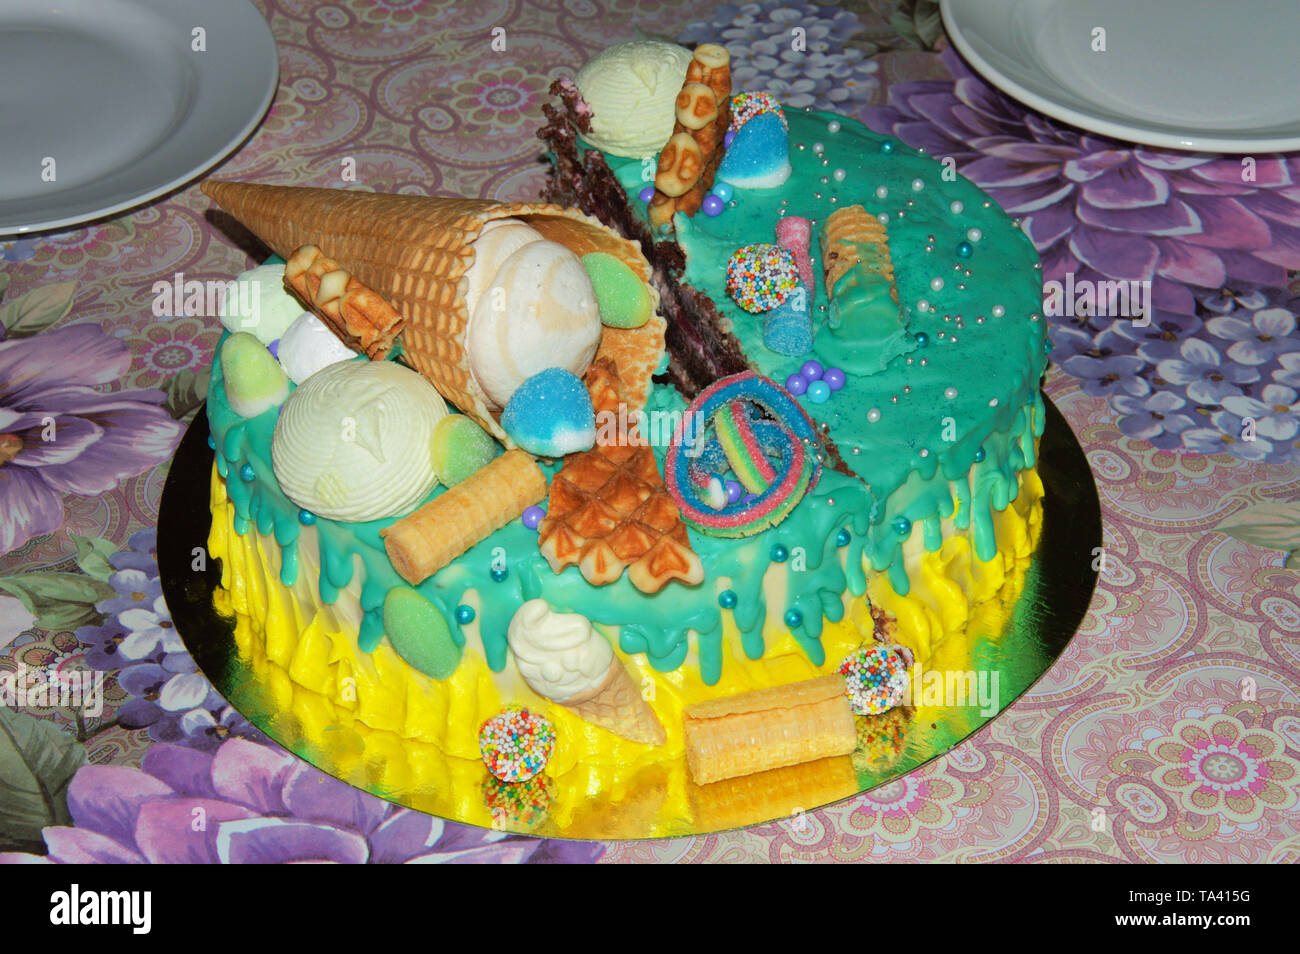 Pleasant Beautiful Birthday Cake In Icing With Fillings Of Fruit Funny Birthday Cards Online Inifodamsfinfo